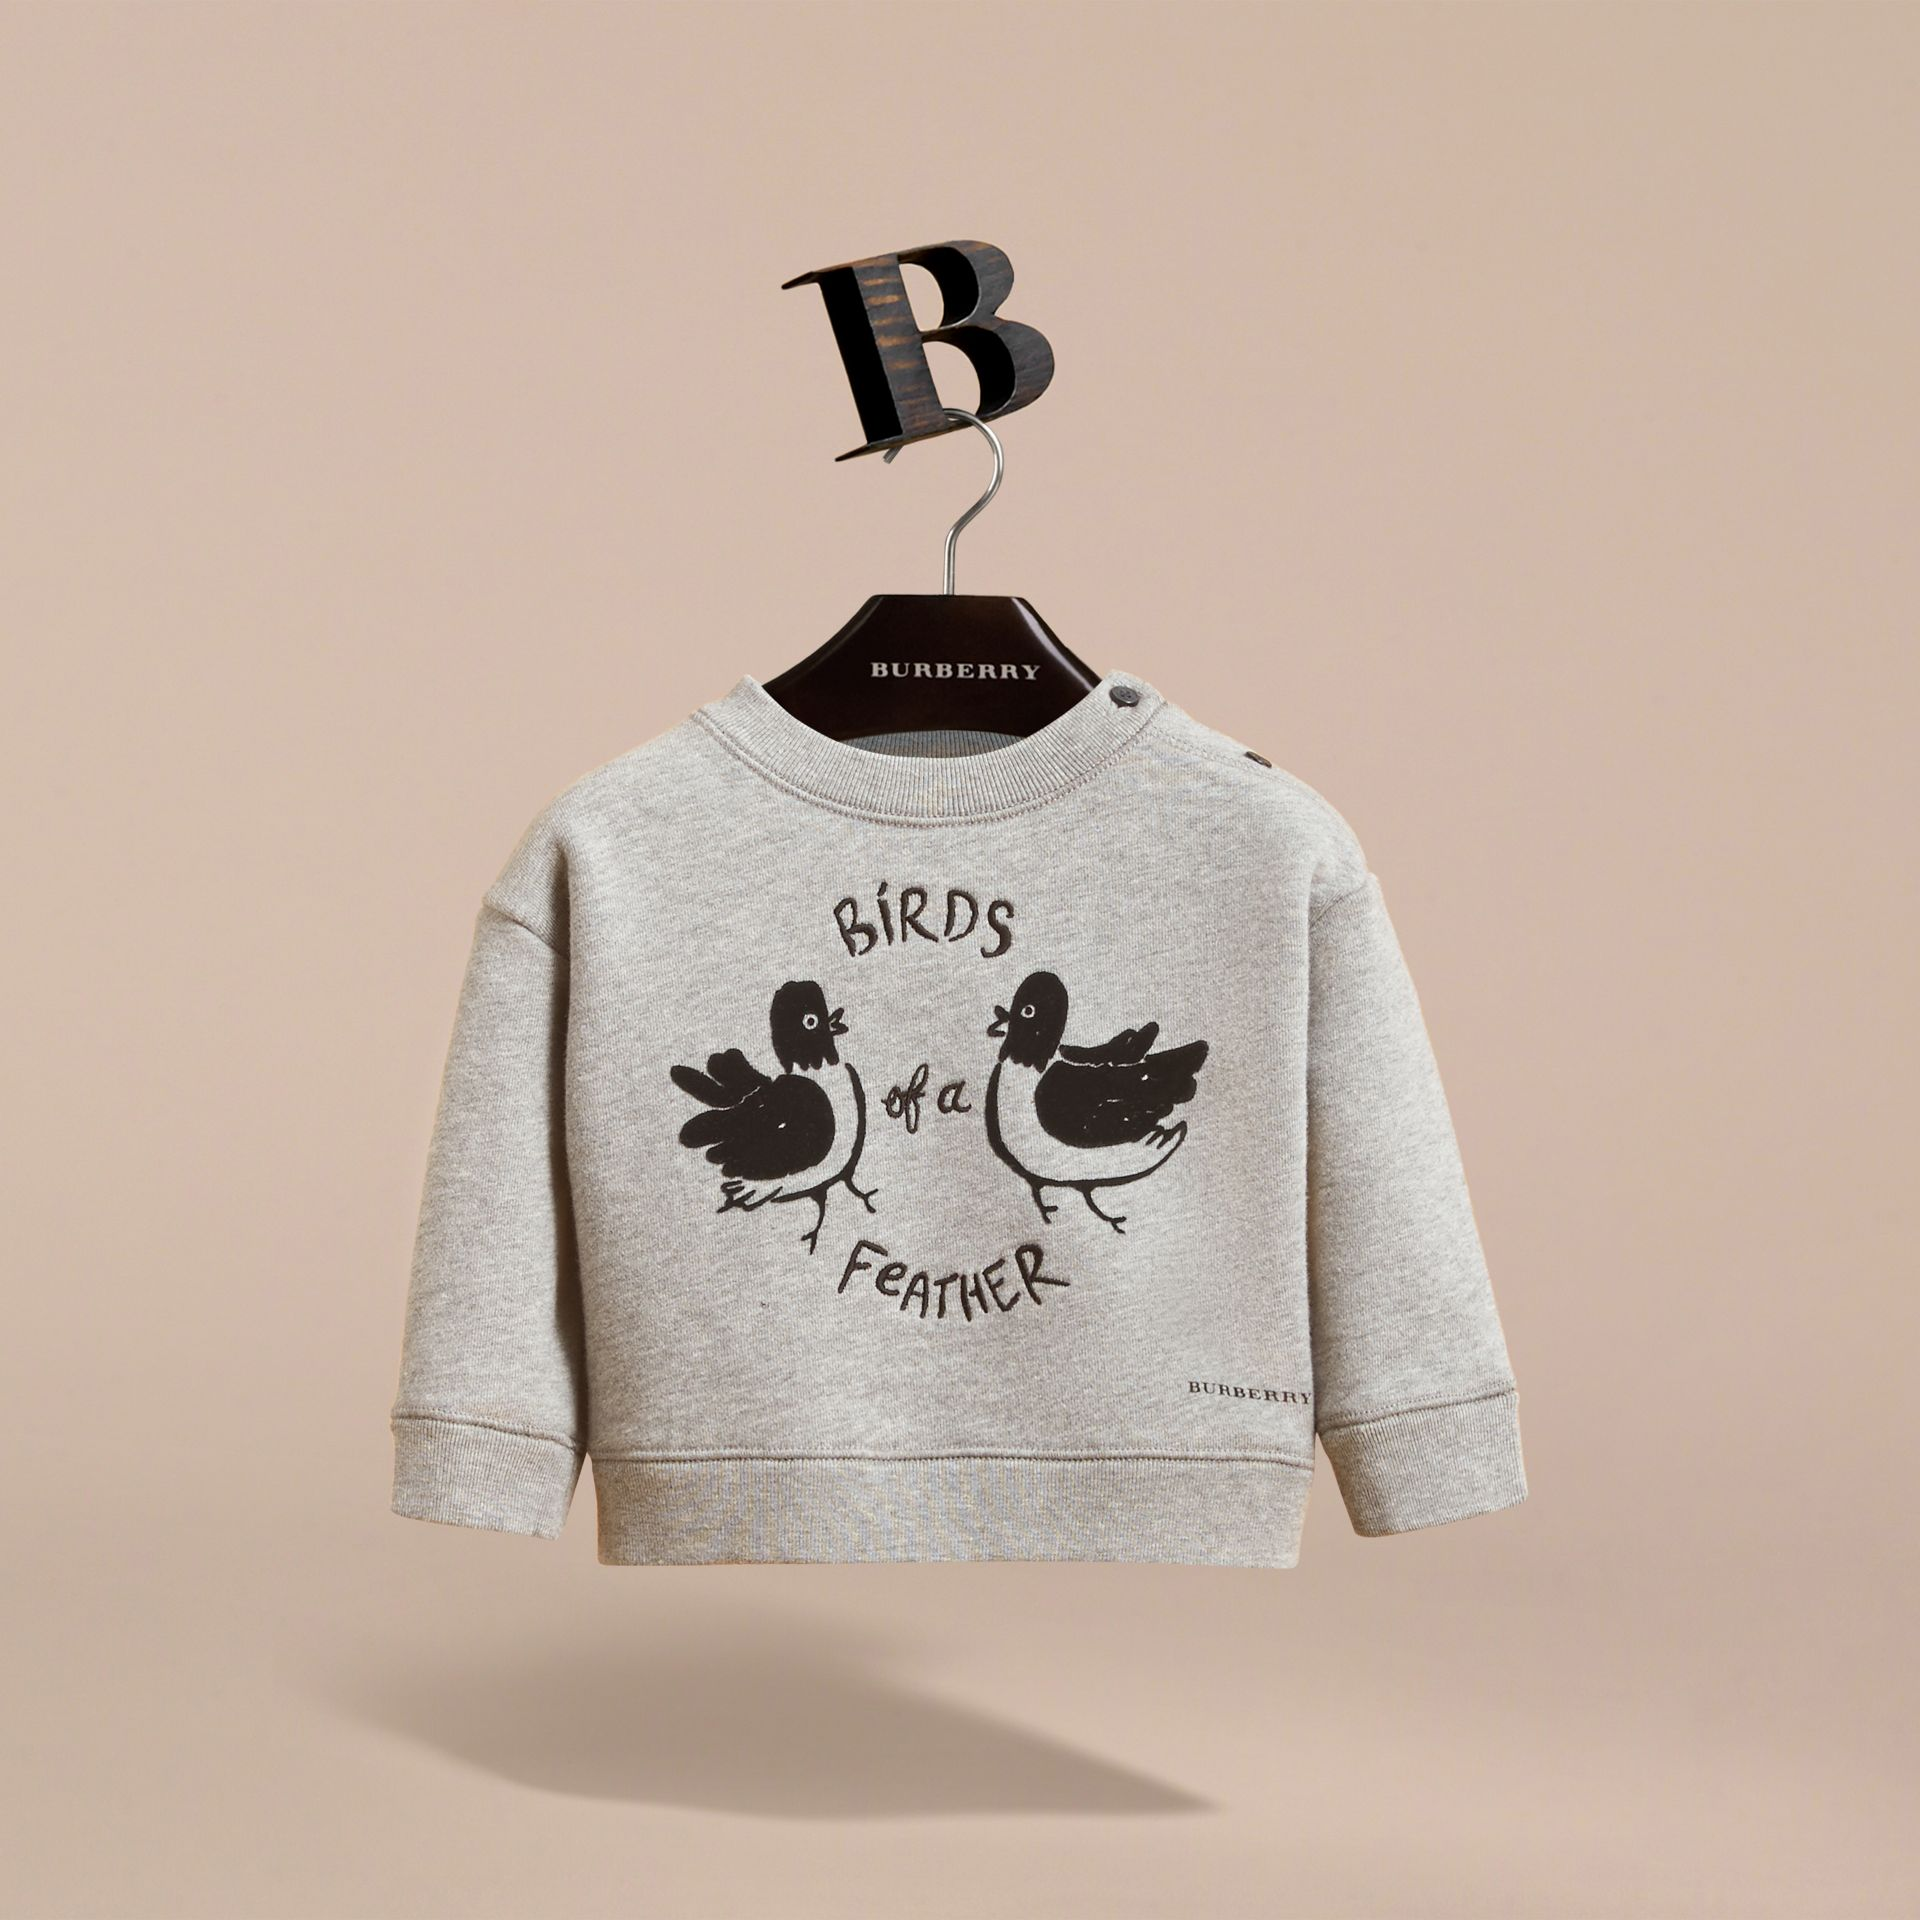 Birds of a Feather Motif Cotton Sweatshirt in Grey Melange | Burberry - gallery image 3